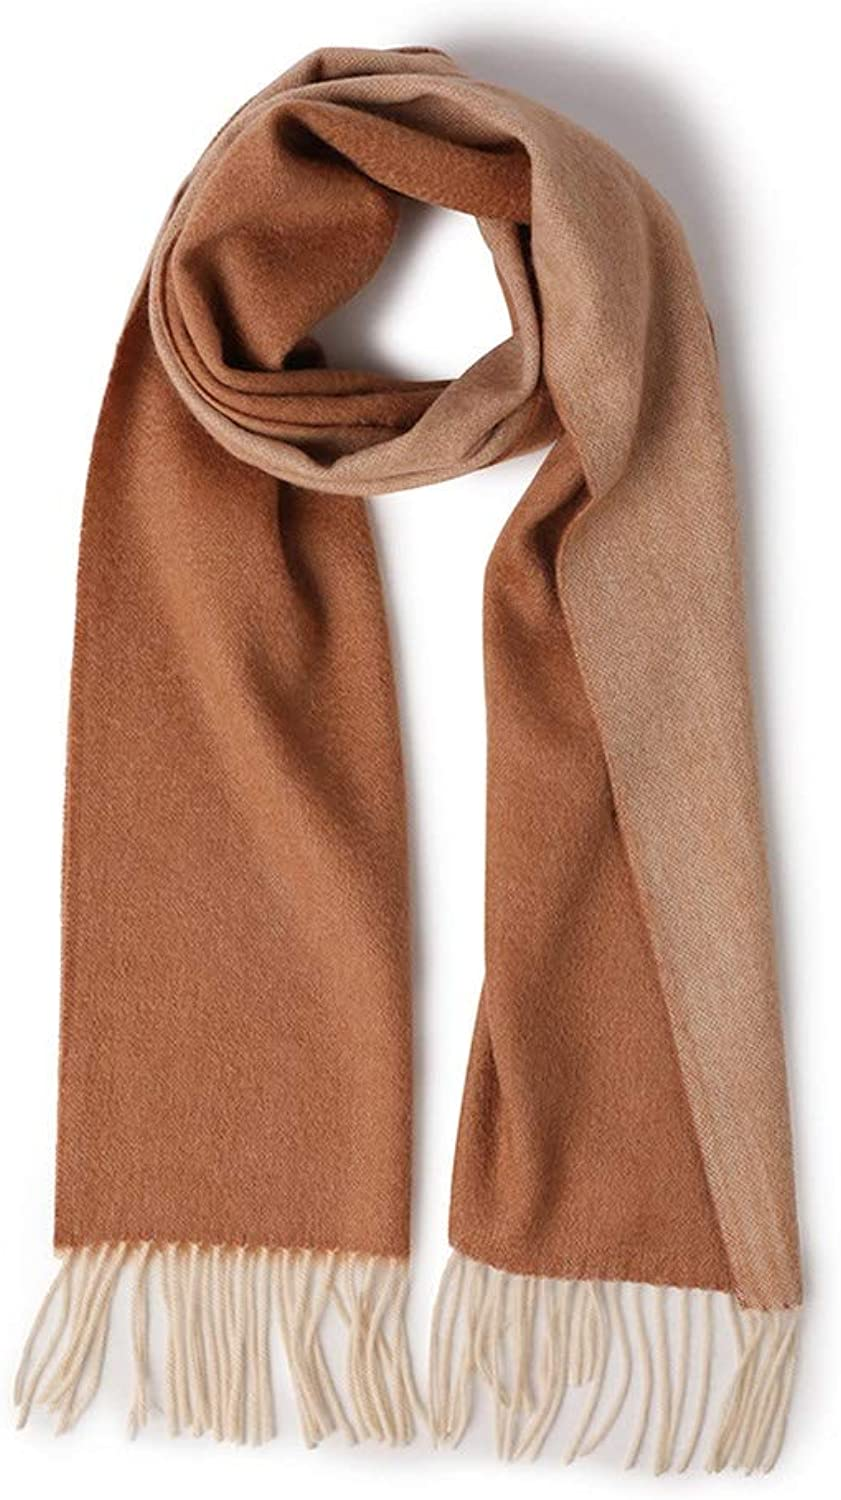 Wool Scarf Men and Women Couple Double Thick Wool Shawl Soft Autumn and Winter Warm Wild color Collar Scarf Cold Weather Scarves (color   Camel red, Size   One Size)